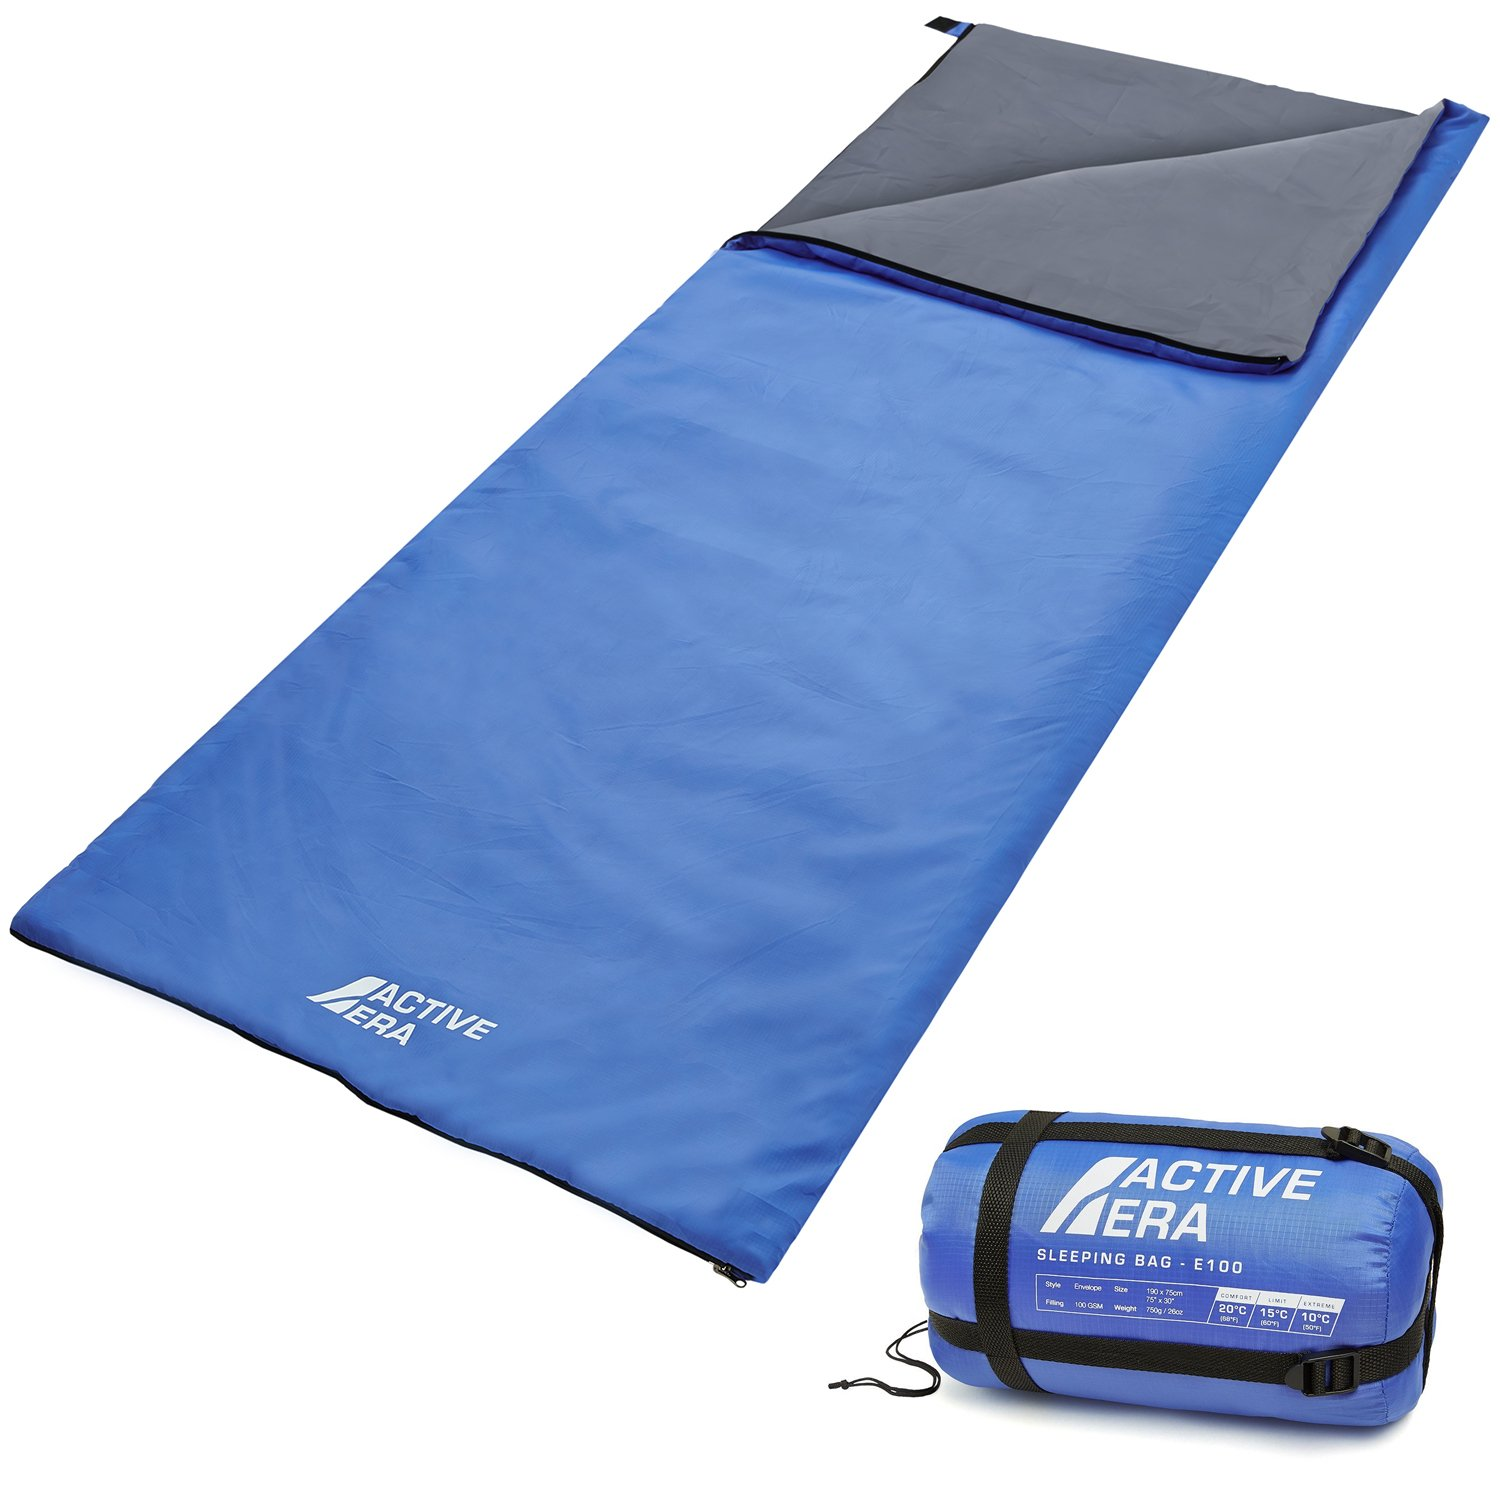 Active Era Ultra Lightweight Sleeping Bag – Perfect for Warm Weather, Sleepovers, Fishing, Outdoor Camping and Hiking in The Summer Months